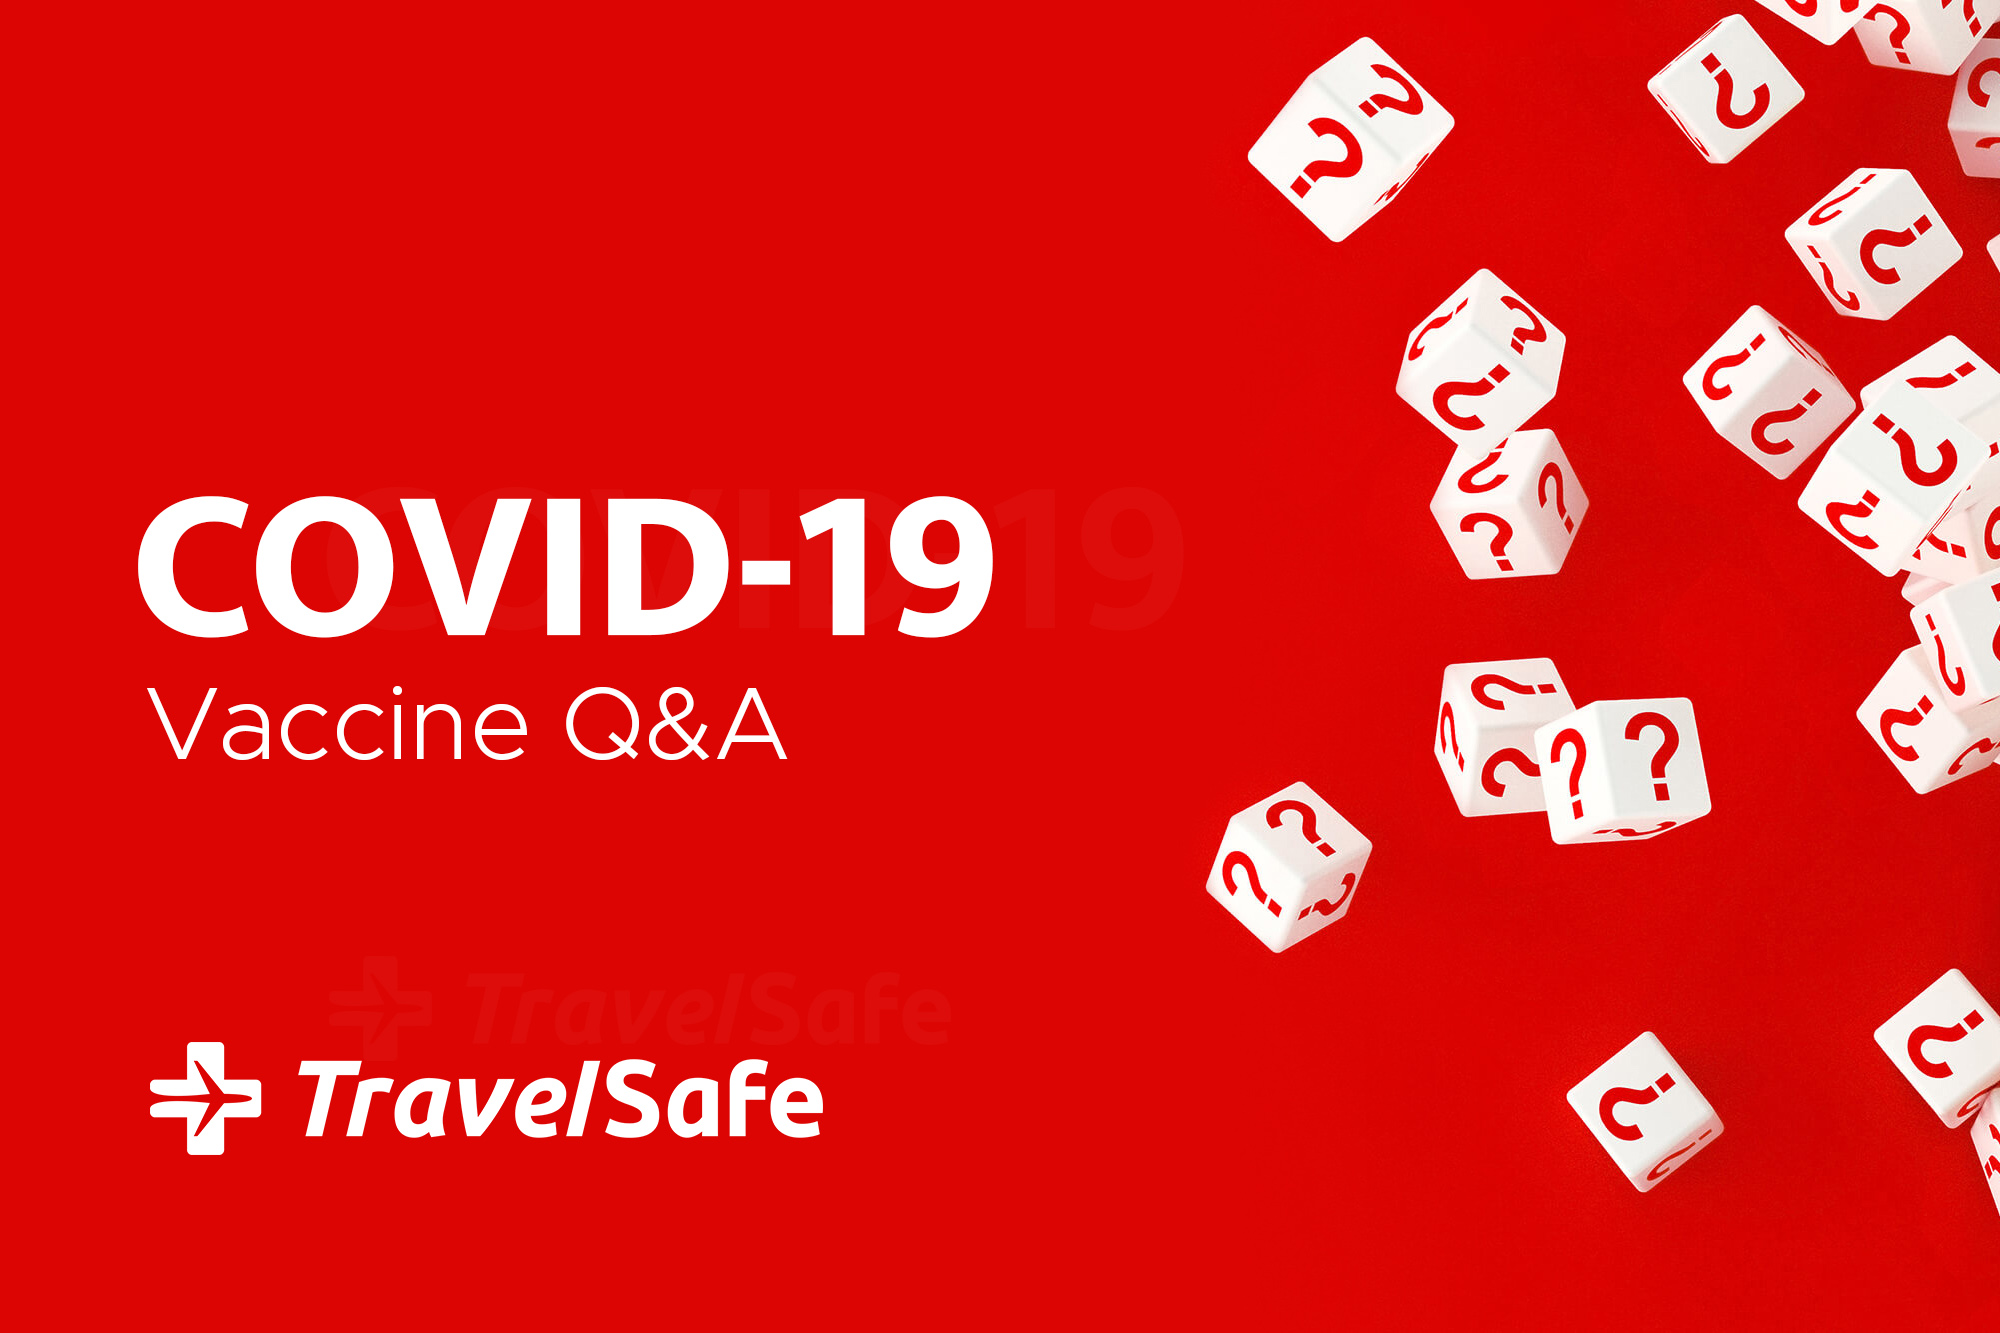 covid vaccine vancouver questions and answers Q&A